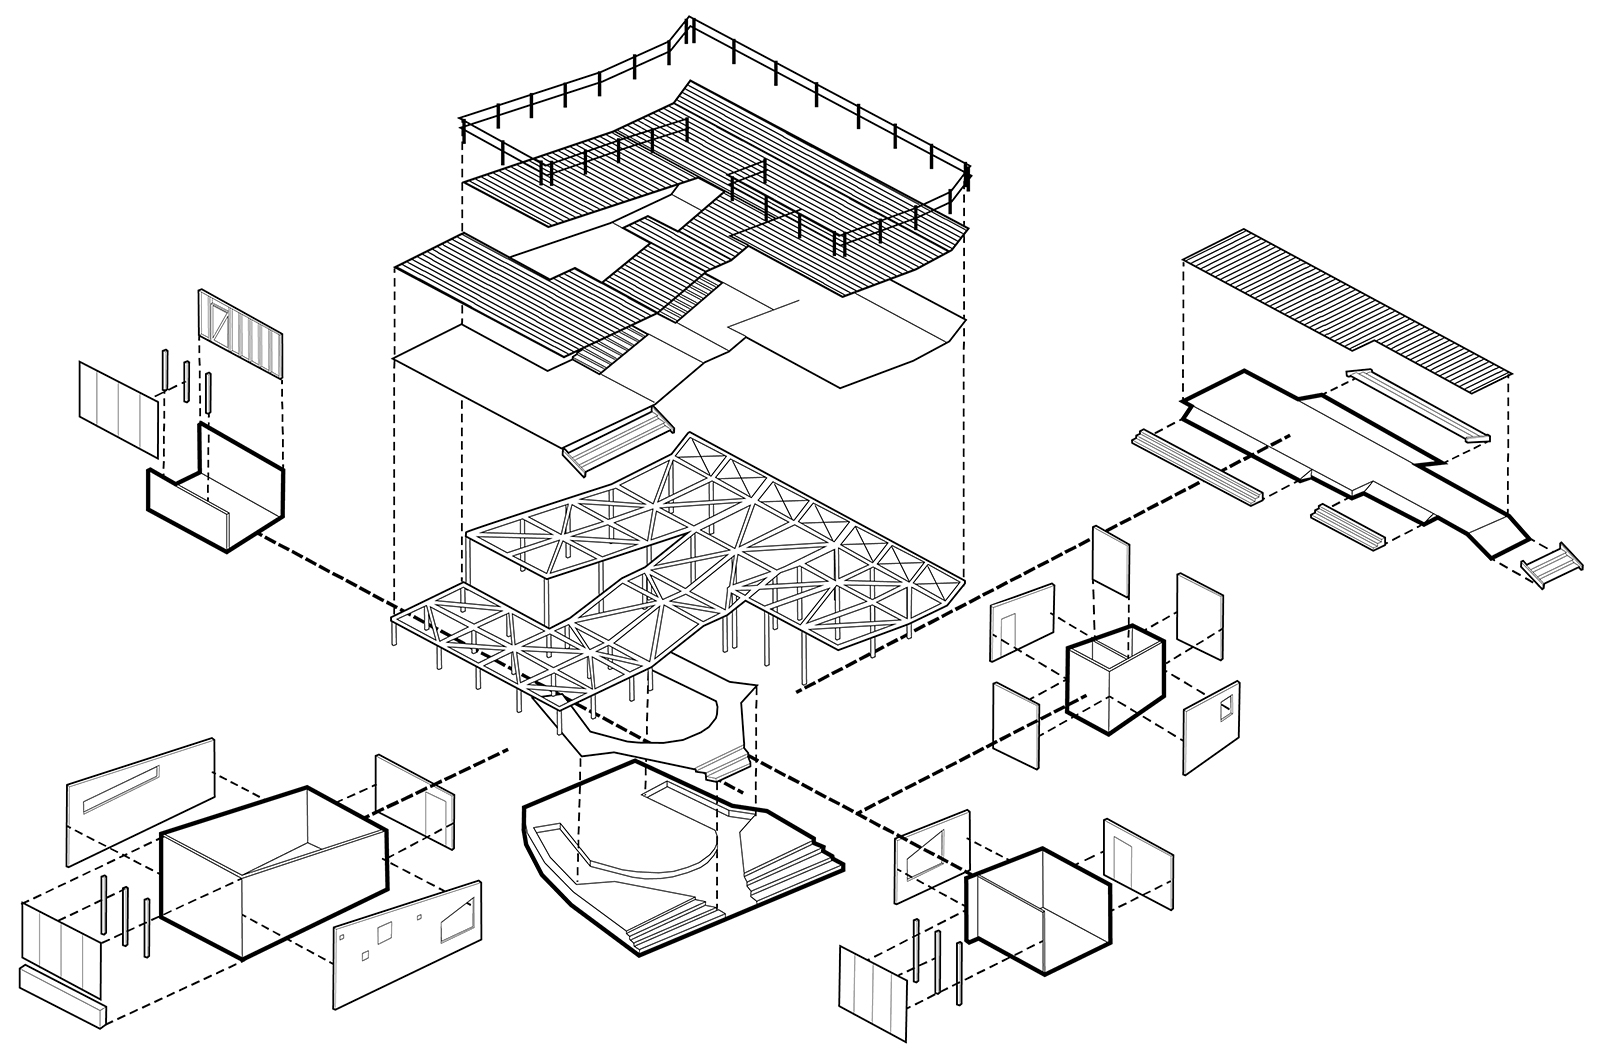 Drawing showing the various modular components for each of the phases of construction of the YELE studios